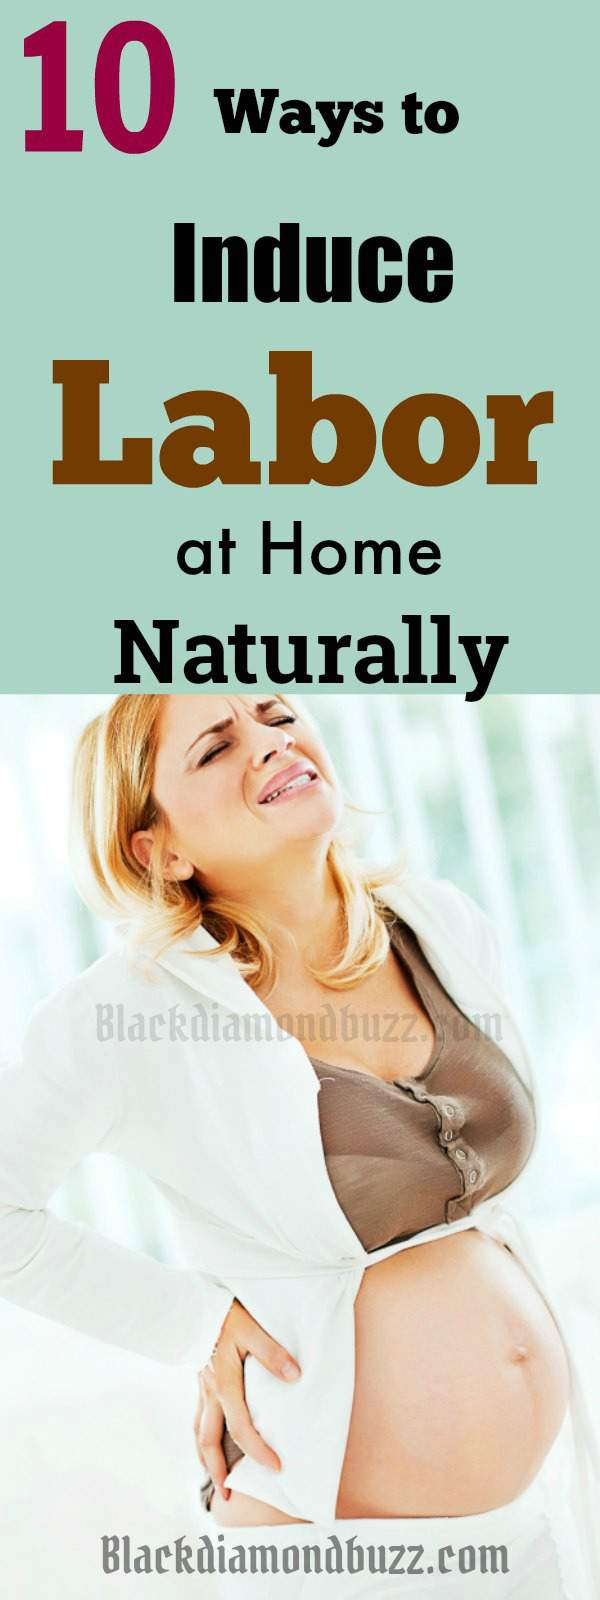 How to Induce Labor at Home Naturally- 10 Fastest and Easy Ways